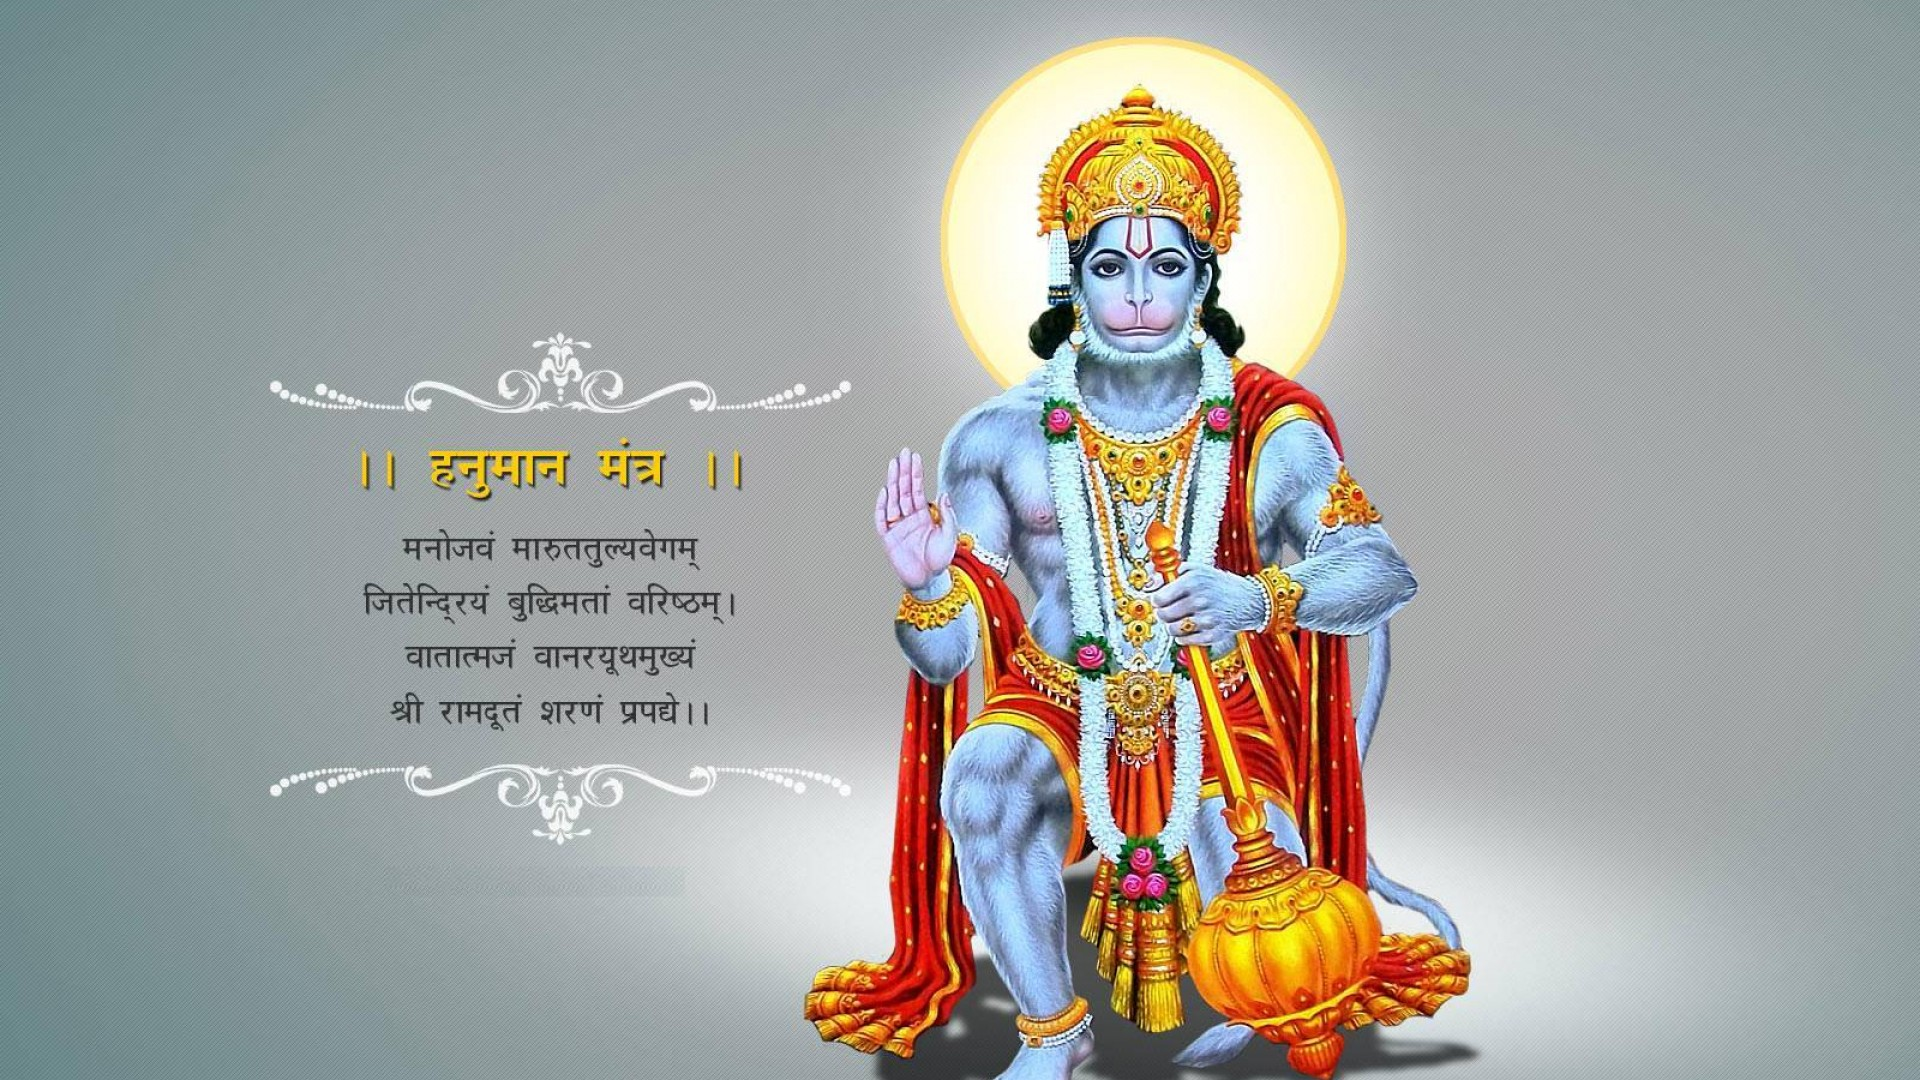 Hanuman Mantra Shri Ram Bhakt Hanuman HD Wallpapers